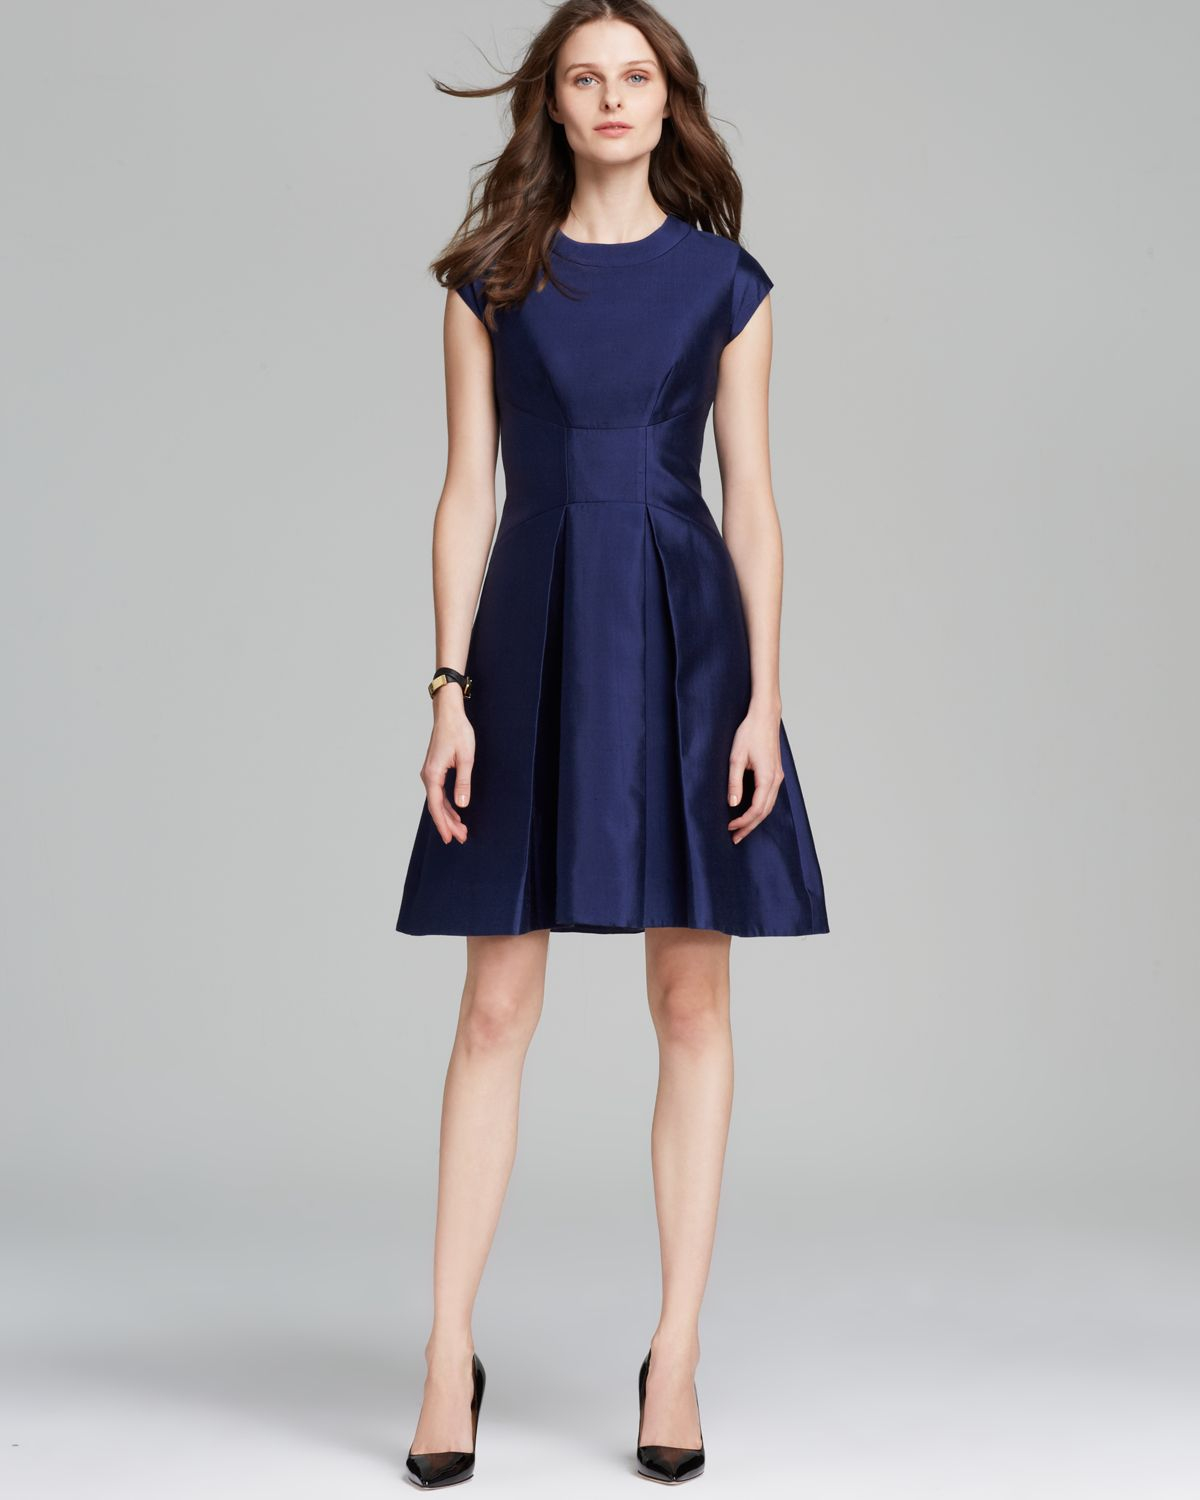 Kate Spade Vail Dress In French Navy Blue Lyst